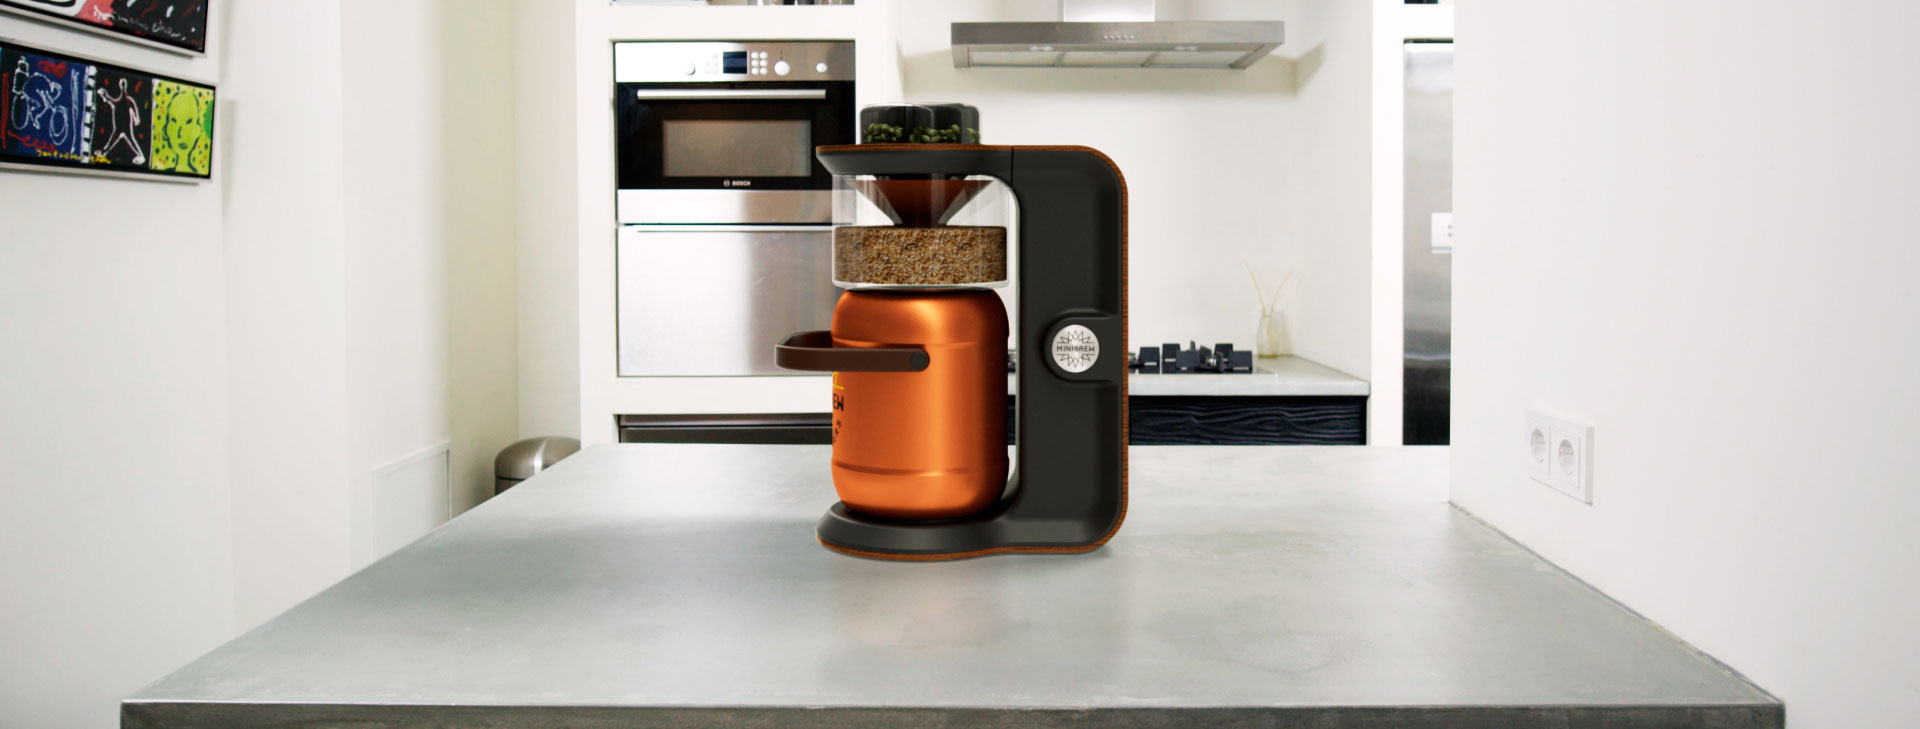 machine-a-brasser-la-biere-minibrew-home